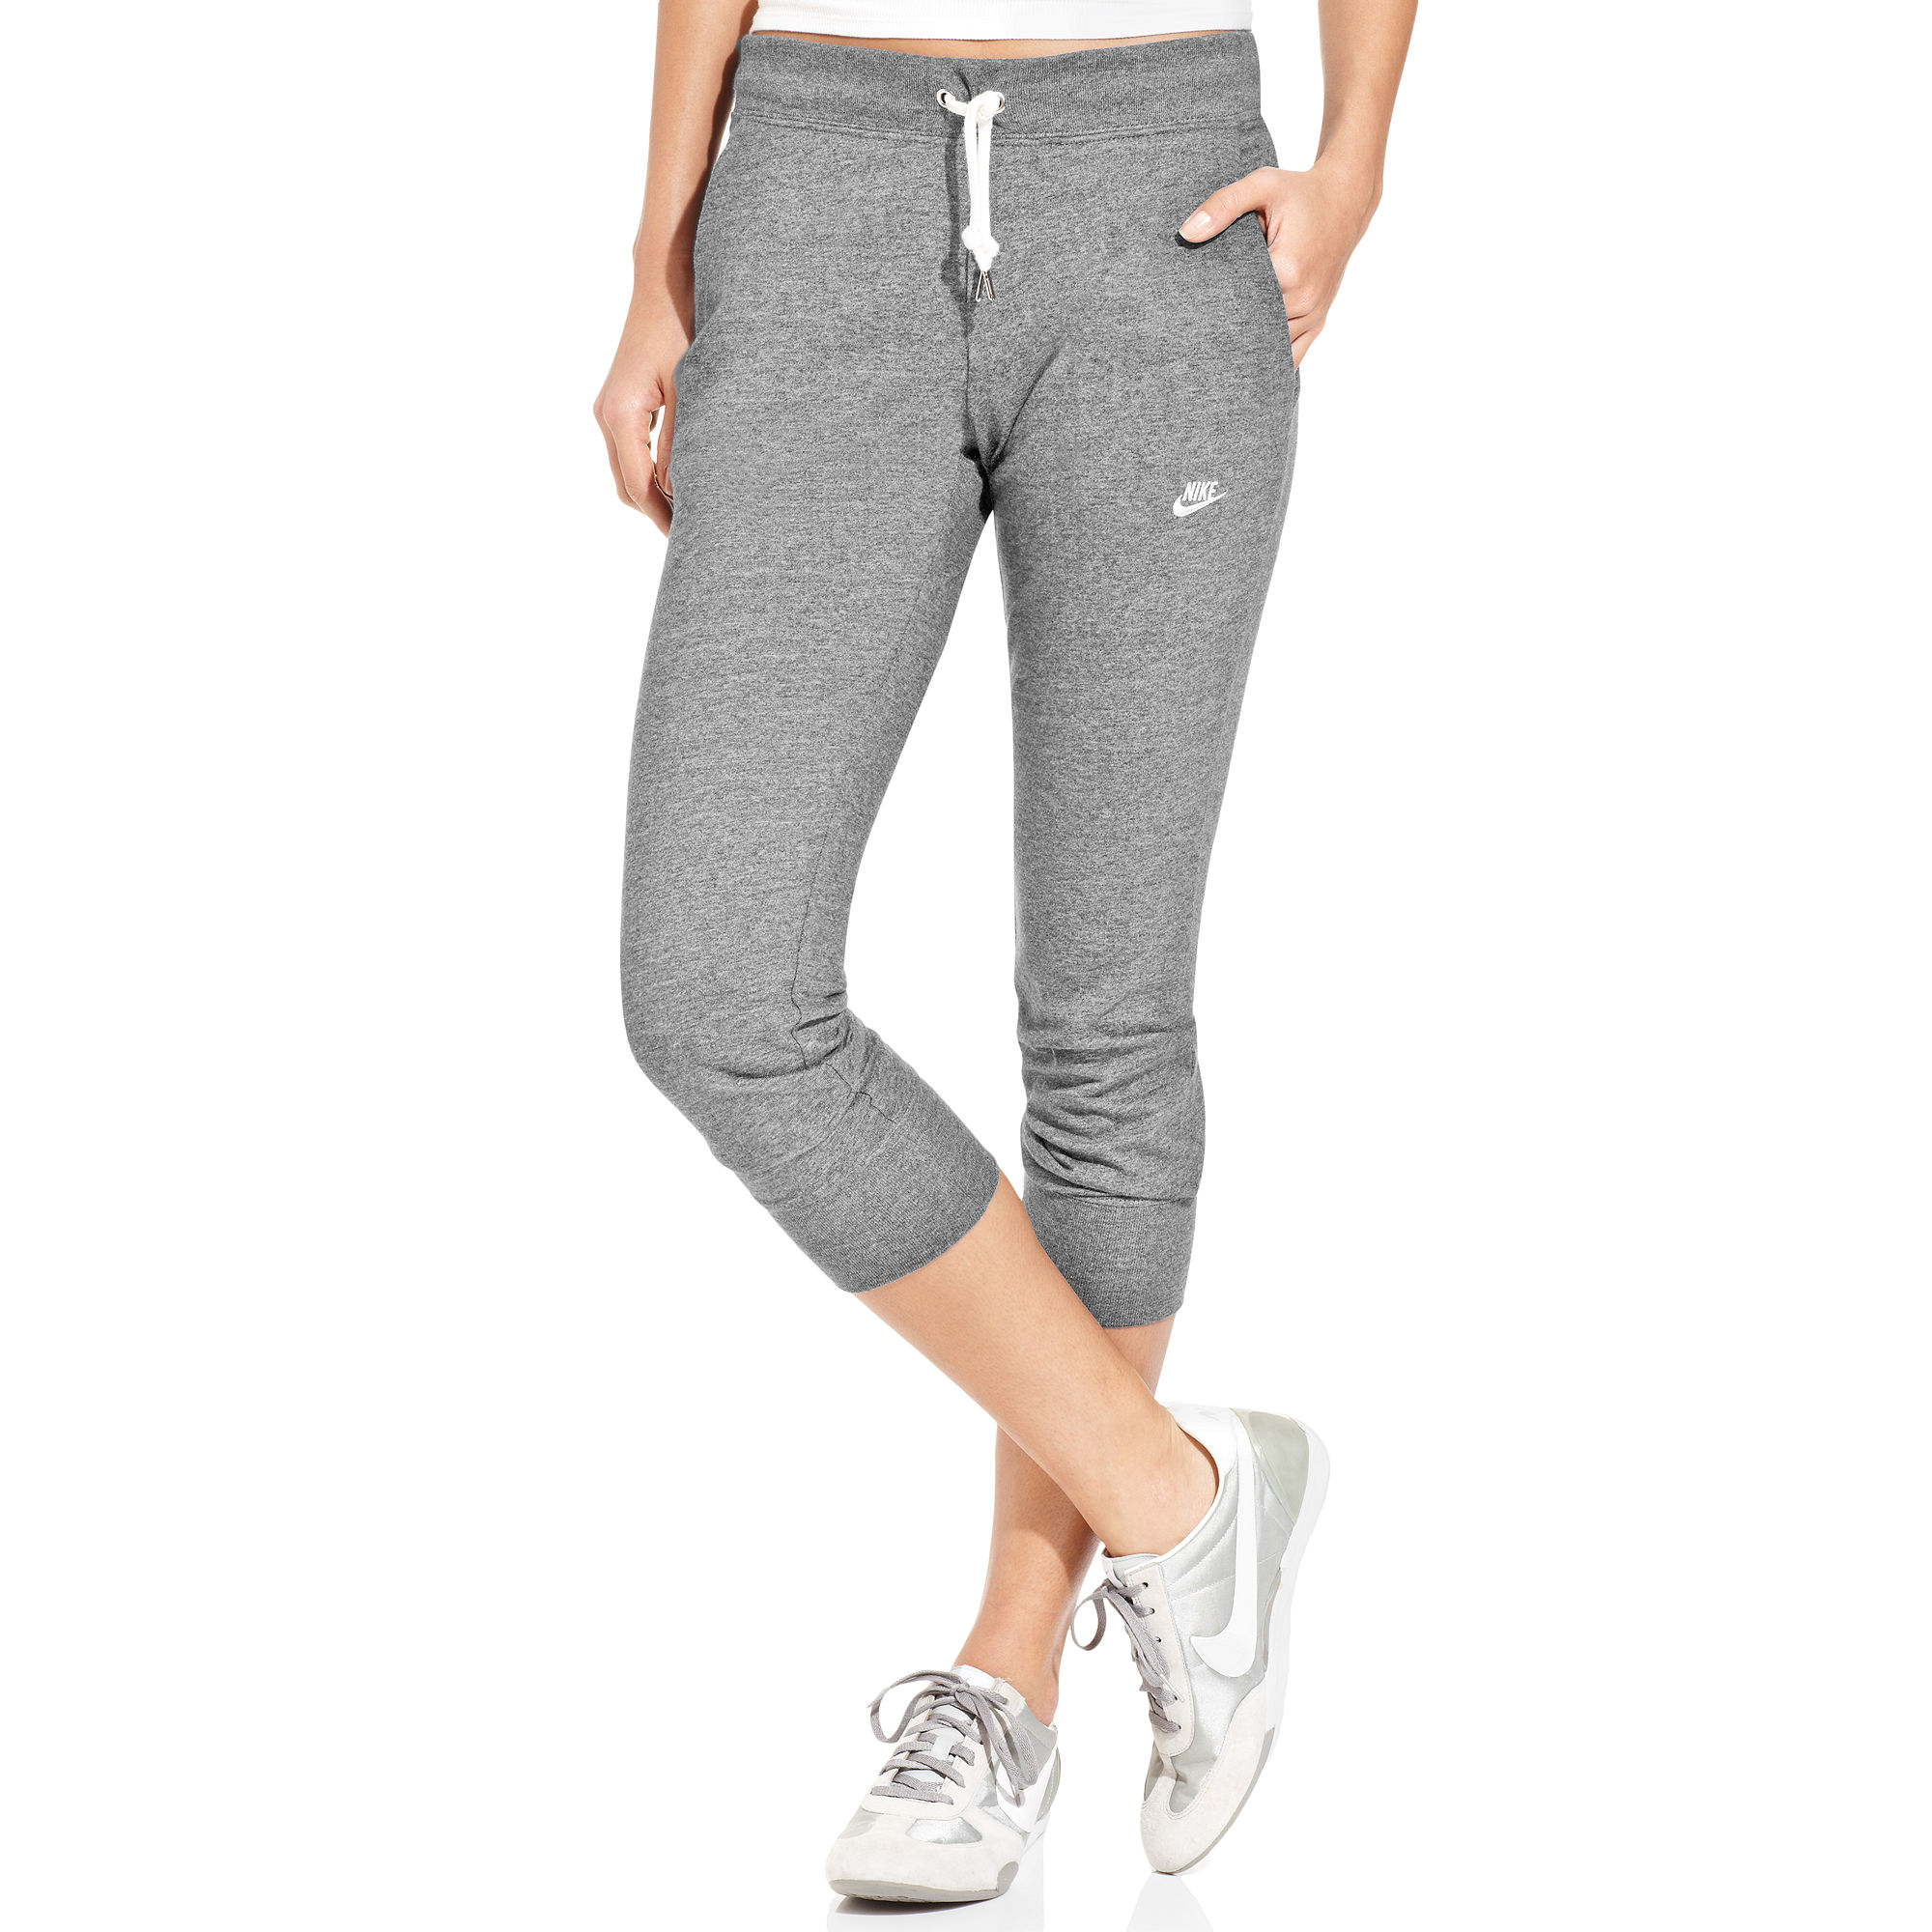 6867803e3336 Lyst - Nike Time Out Capri Sweatpants in Gray